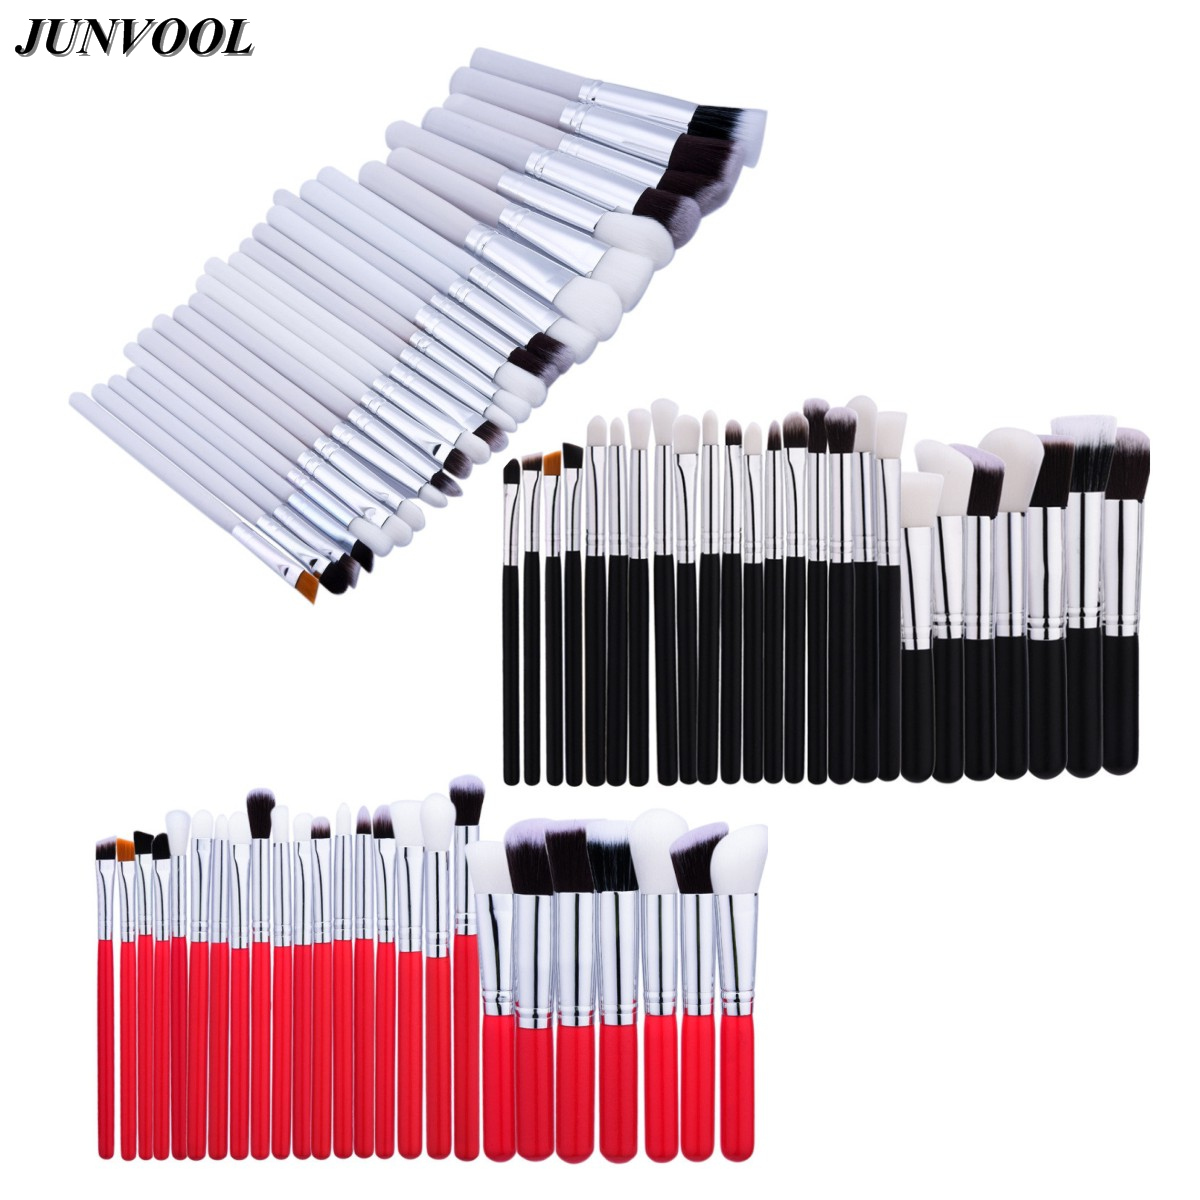 Red Professional Makeup Brush Set 25pcs High Quality Make Up Tools Kit Foundation Powder Blushes Eye Shader Black White Silver professional makeup brushes set make up brush tools kit foundation powder blushes white and black